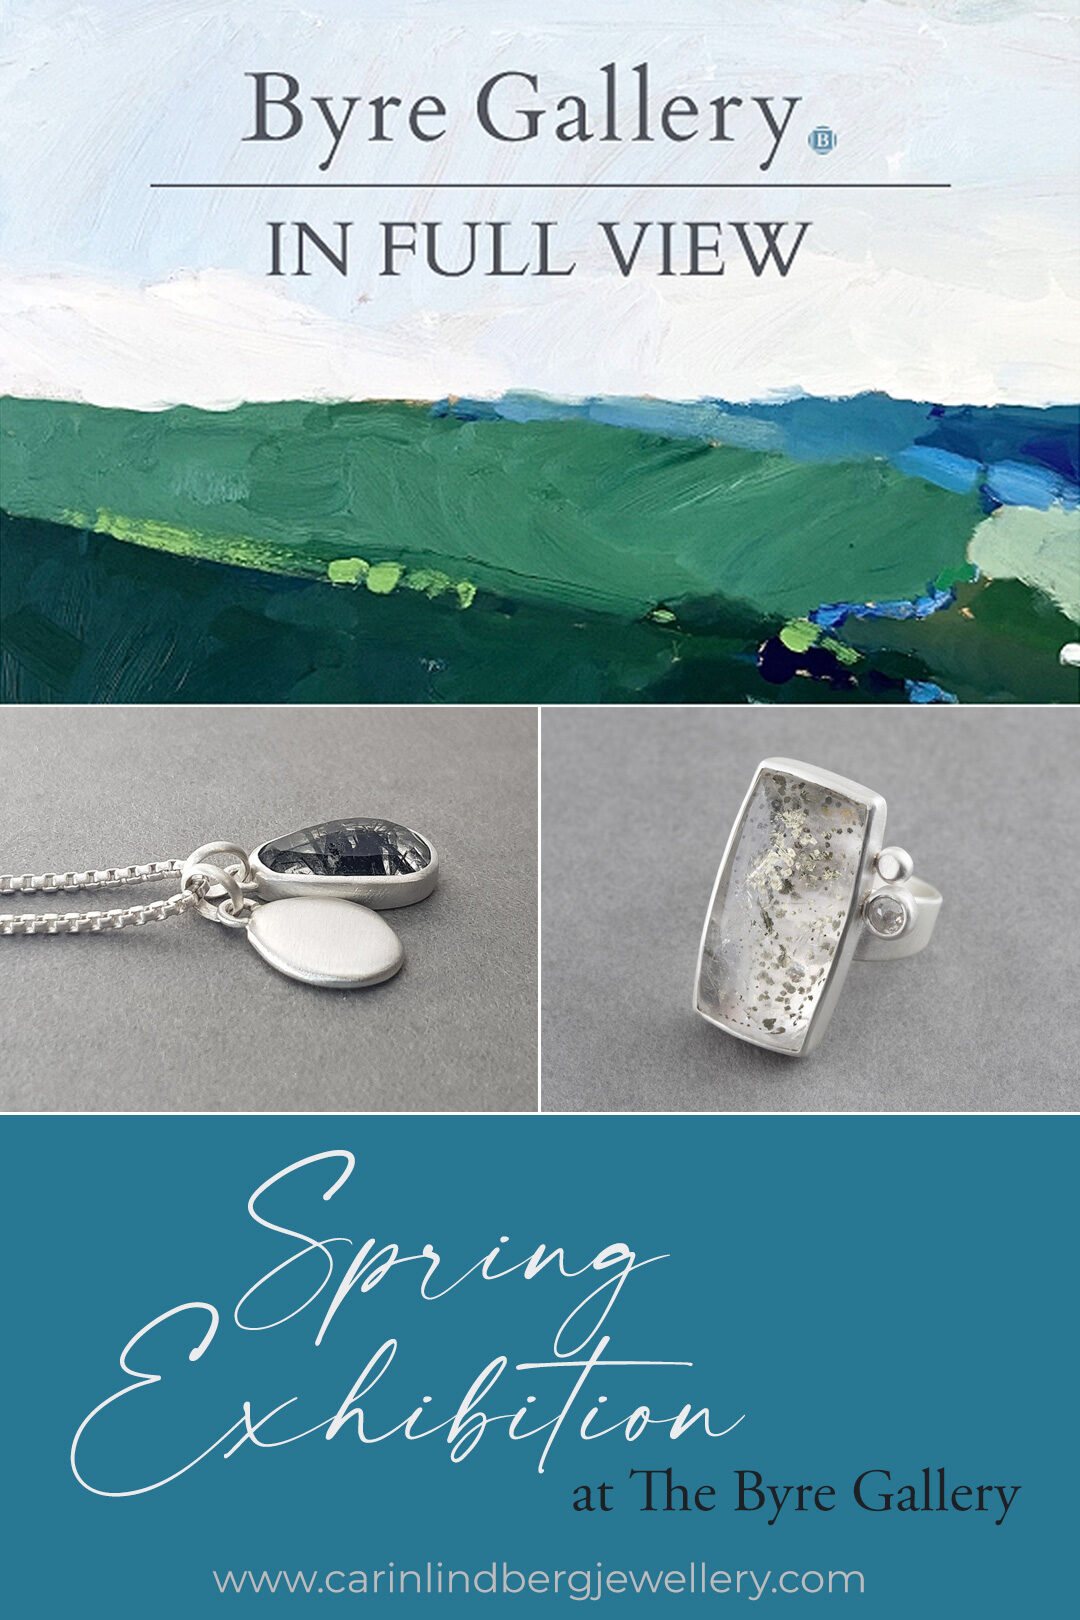 Spring exhibition at The Byre Gallery, April 2021